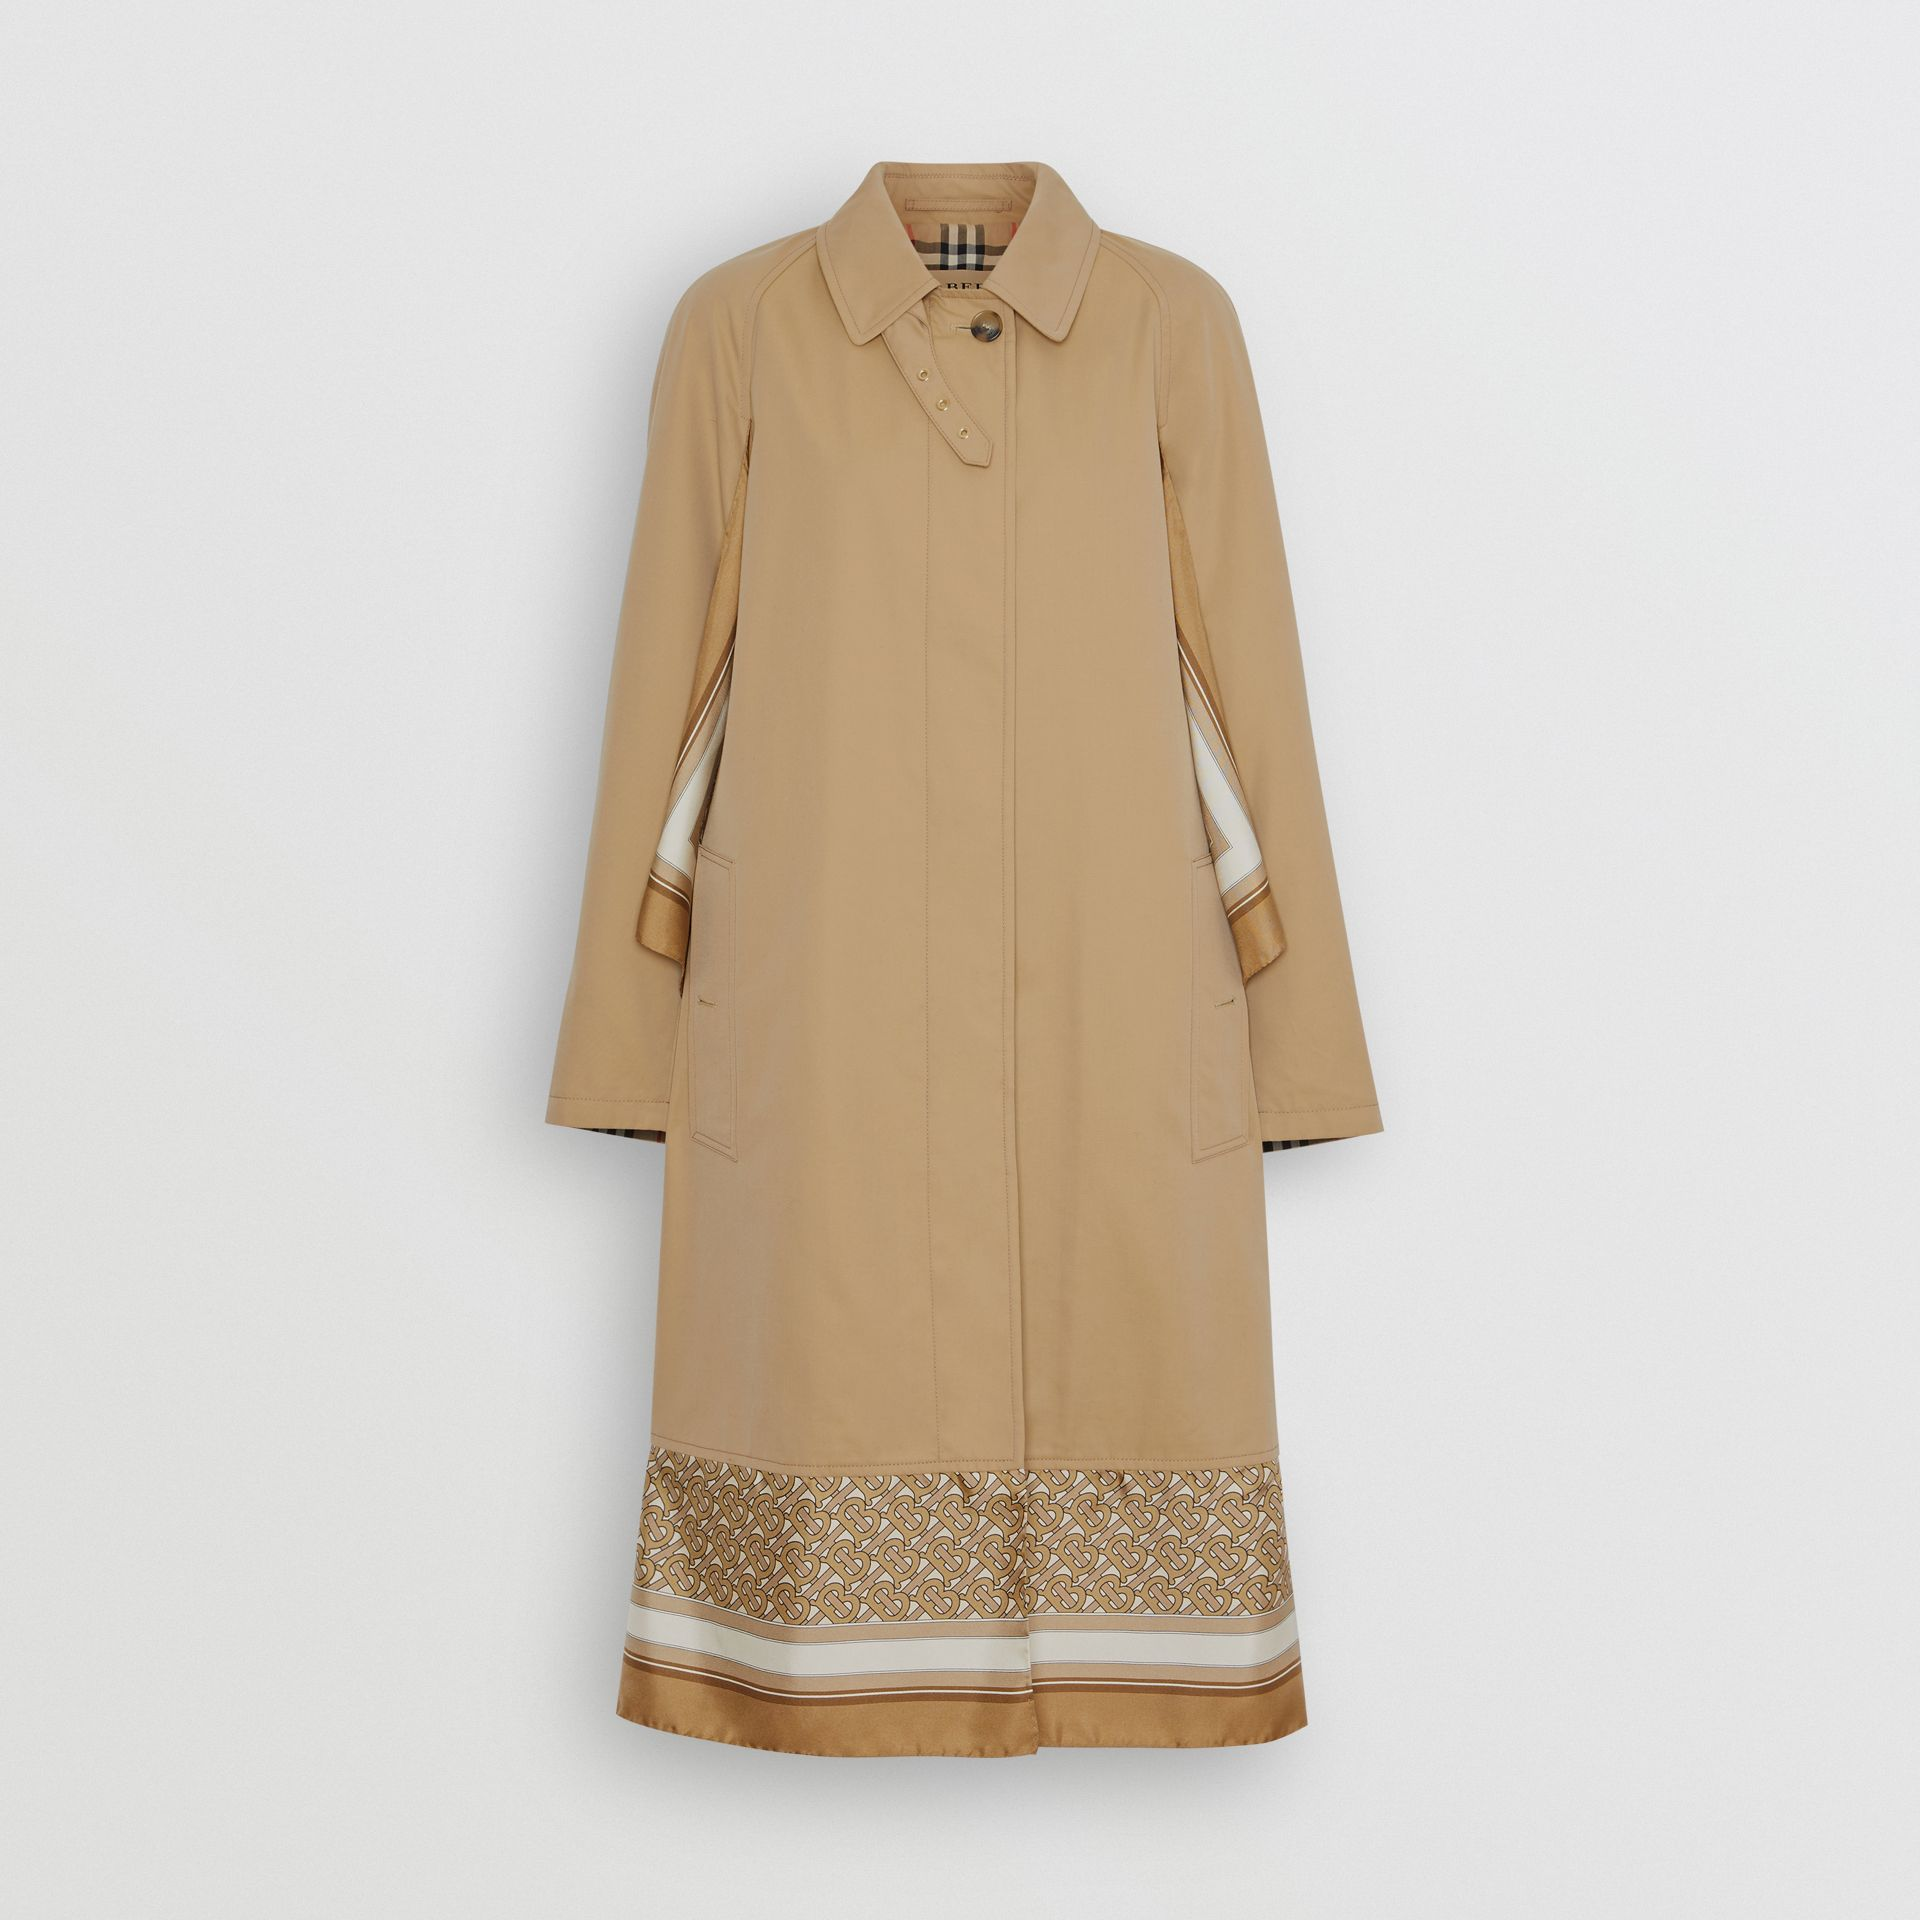 Monogram Print Silk Panel Cotton Car Coat in Pale Honey - Women | Burberry - gallery image 3